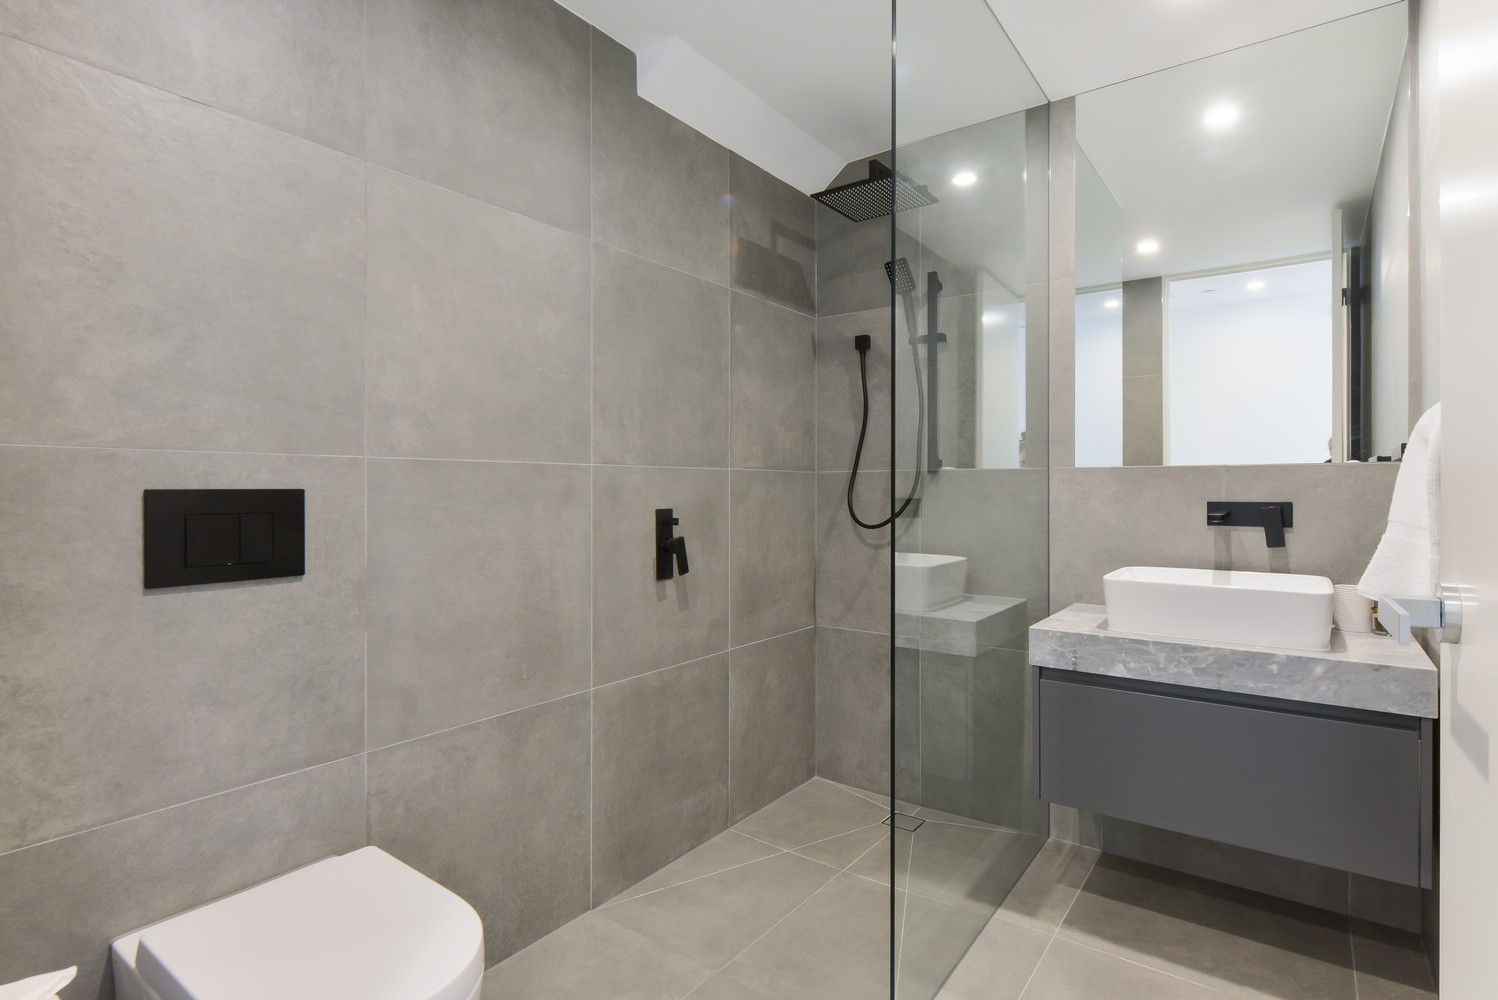 Shower at Victoria Road Townhouse